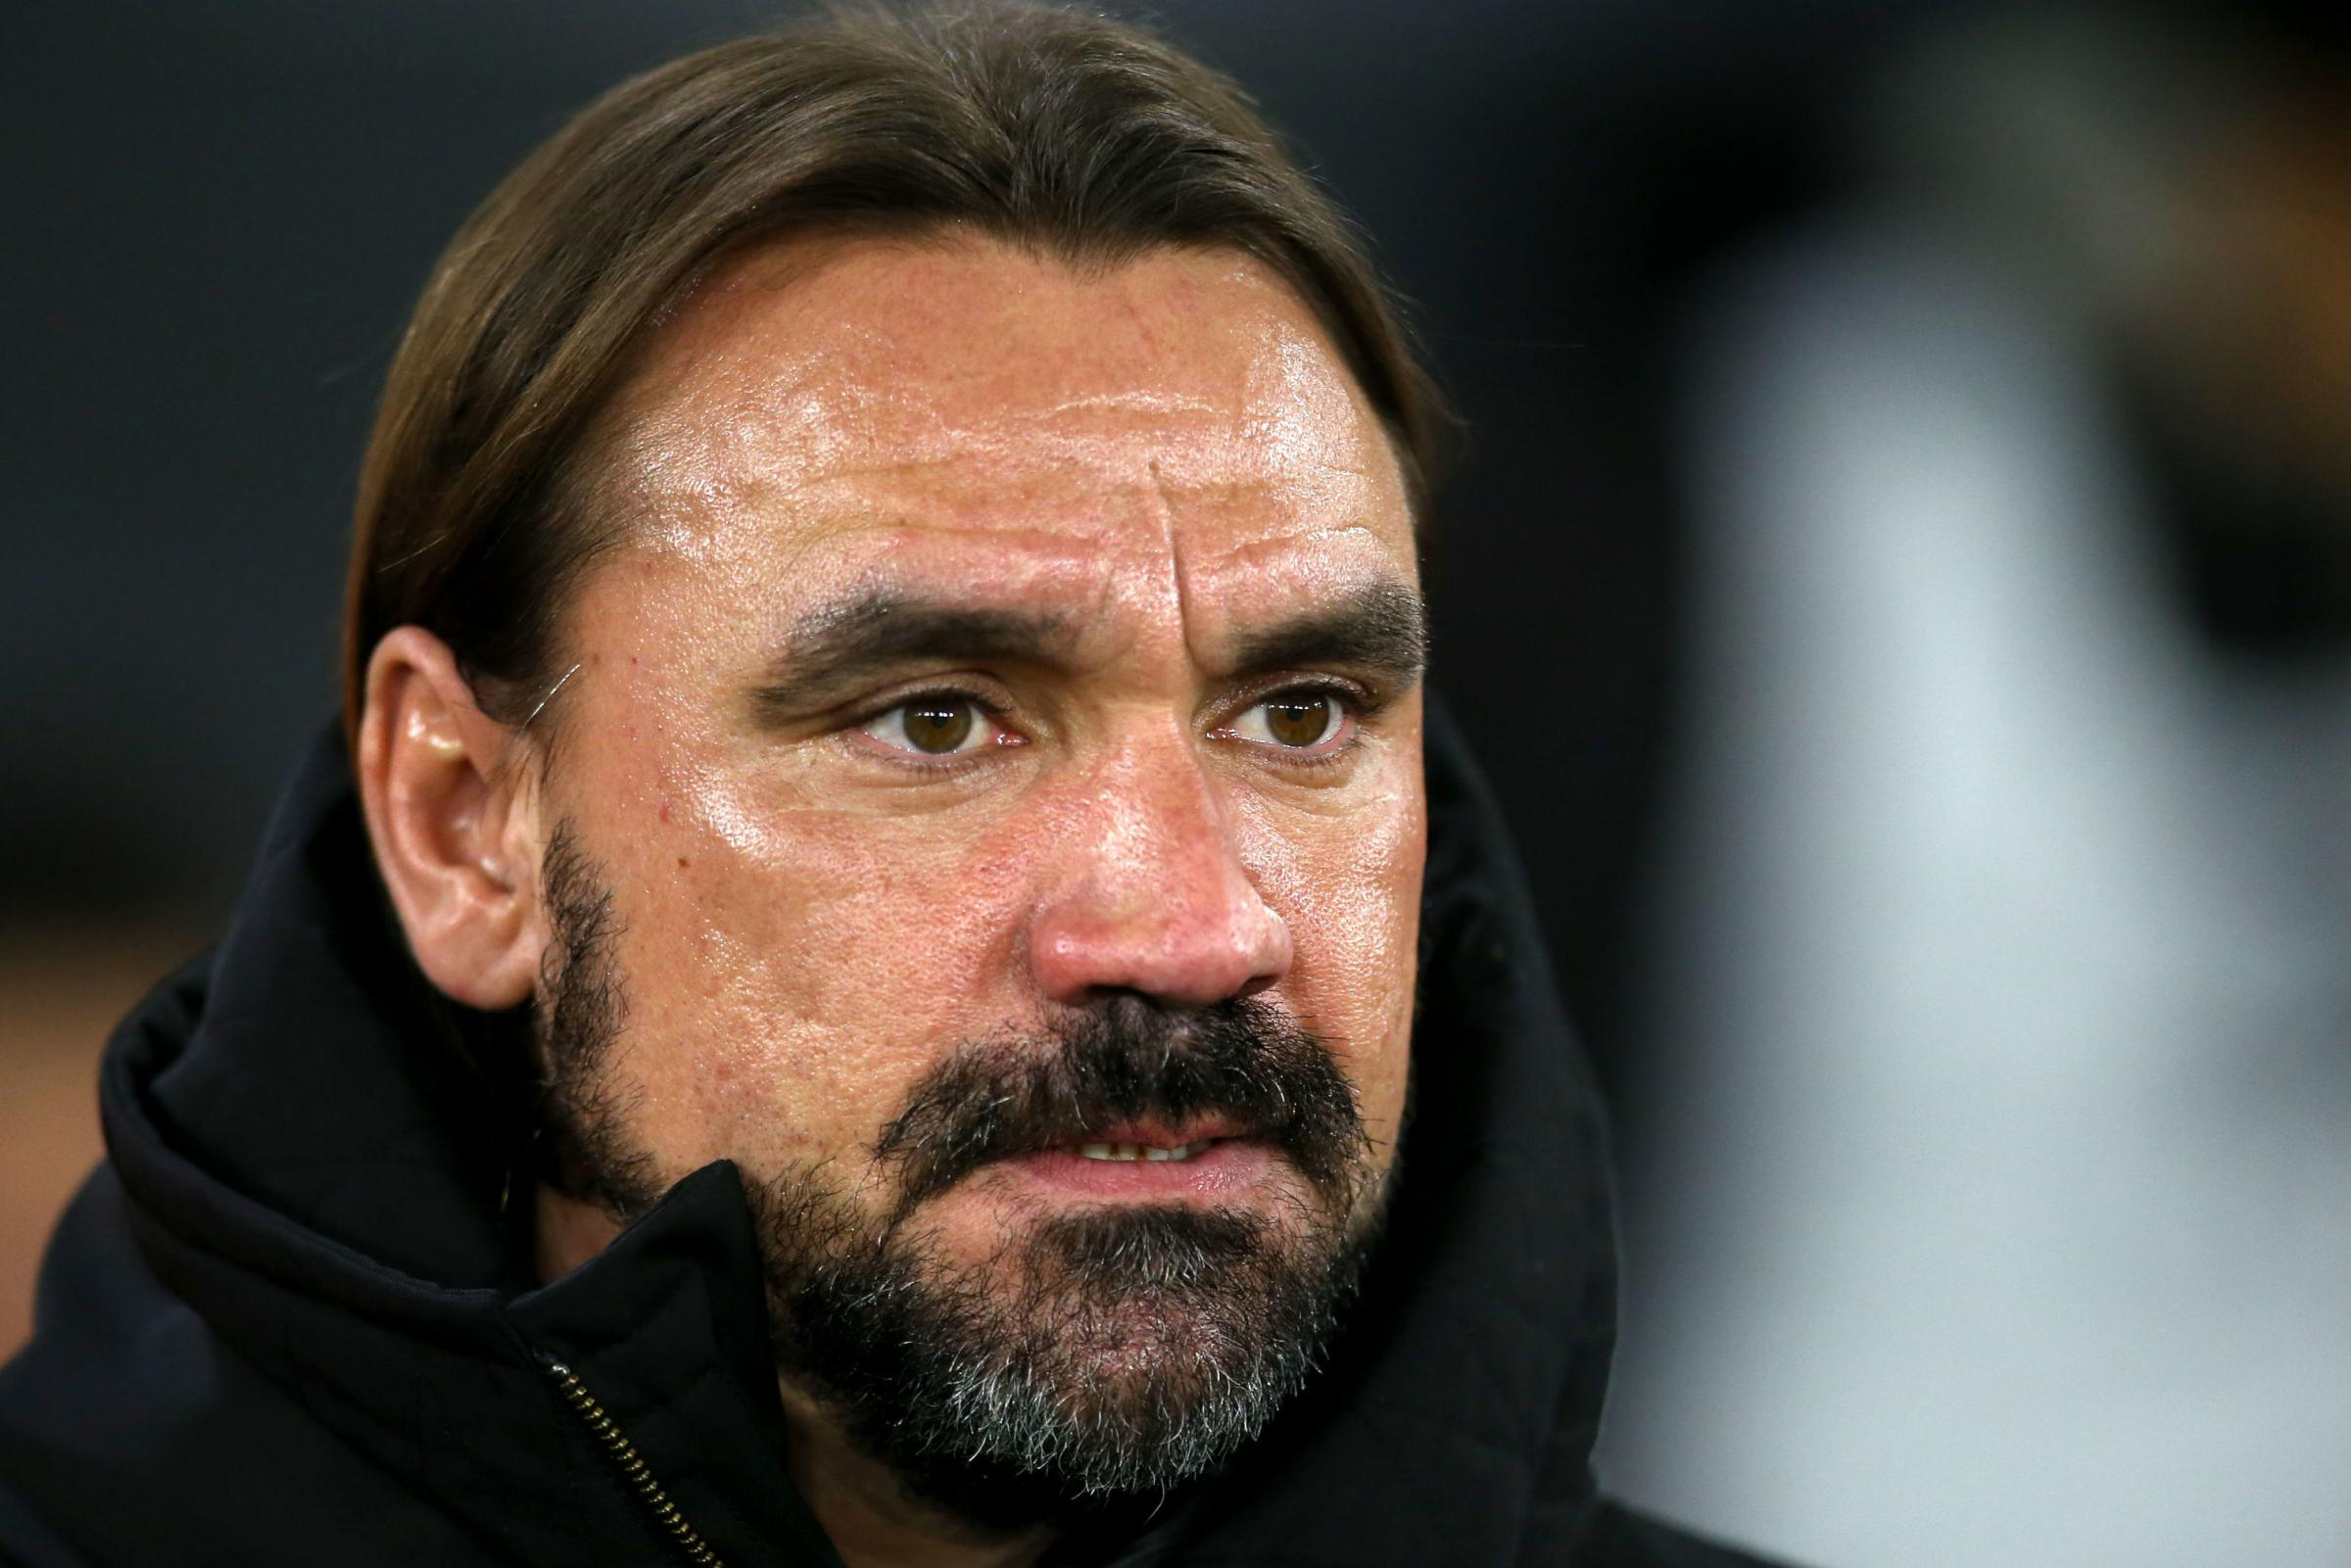 Norwich City manager Daniel Farke: Southampton bullied us